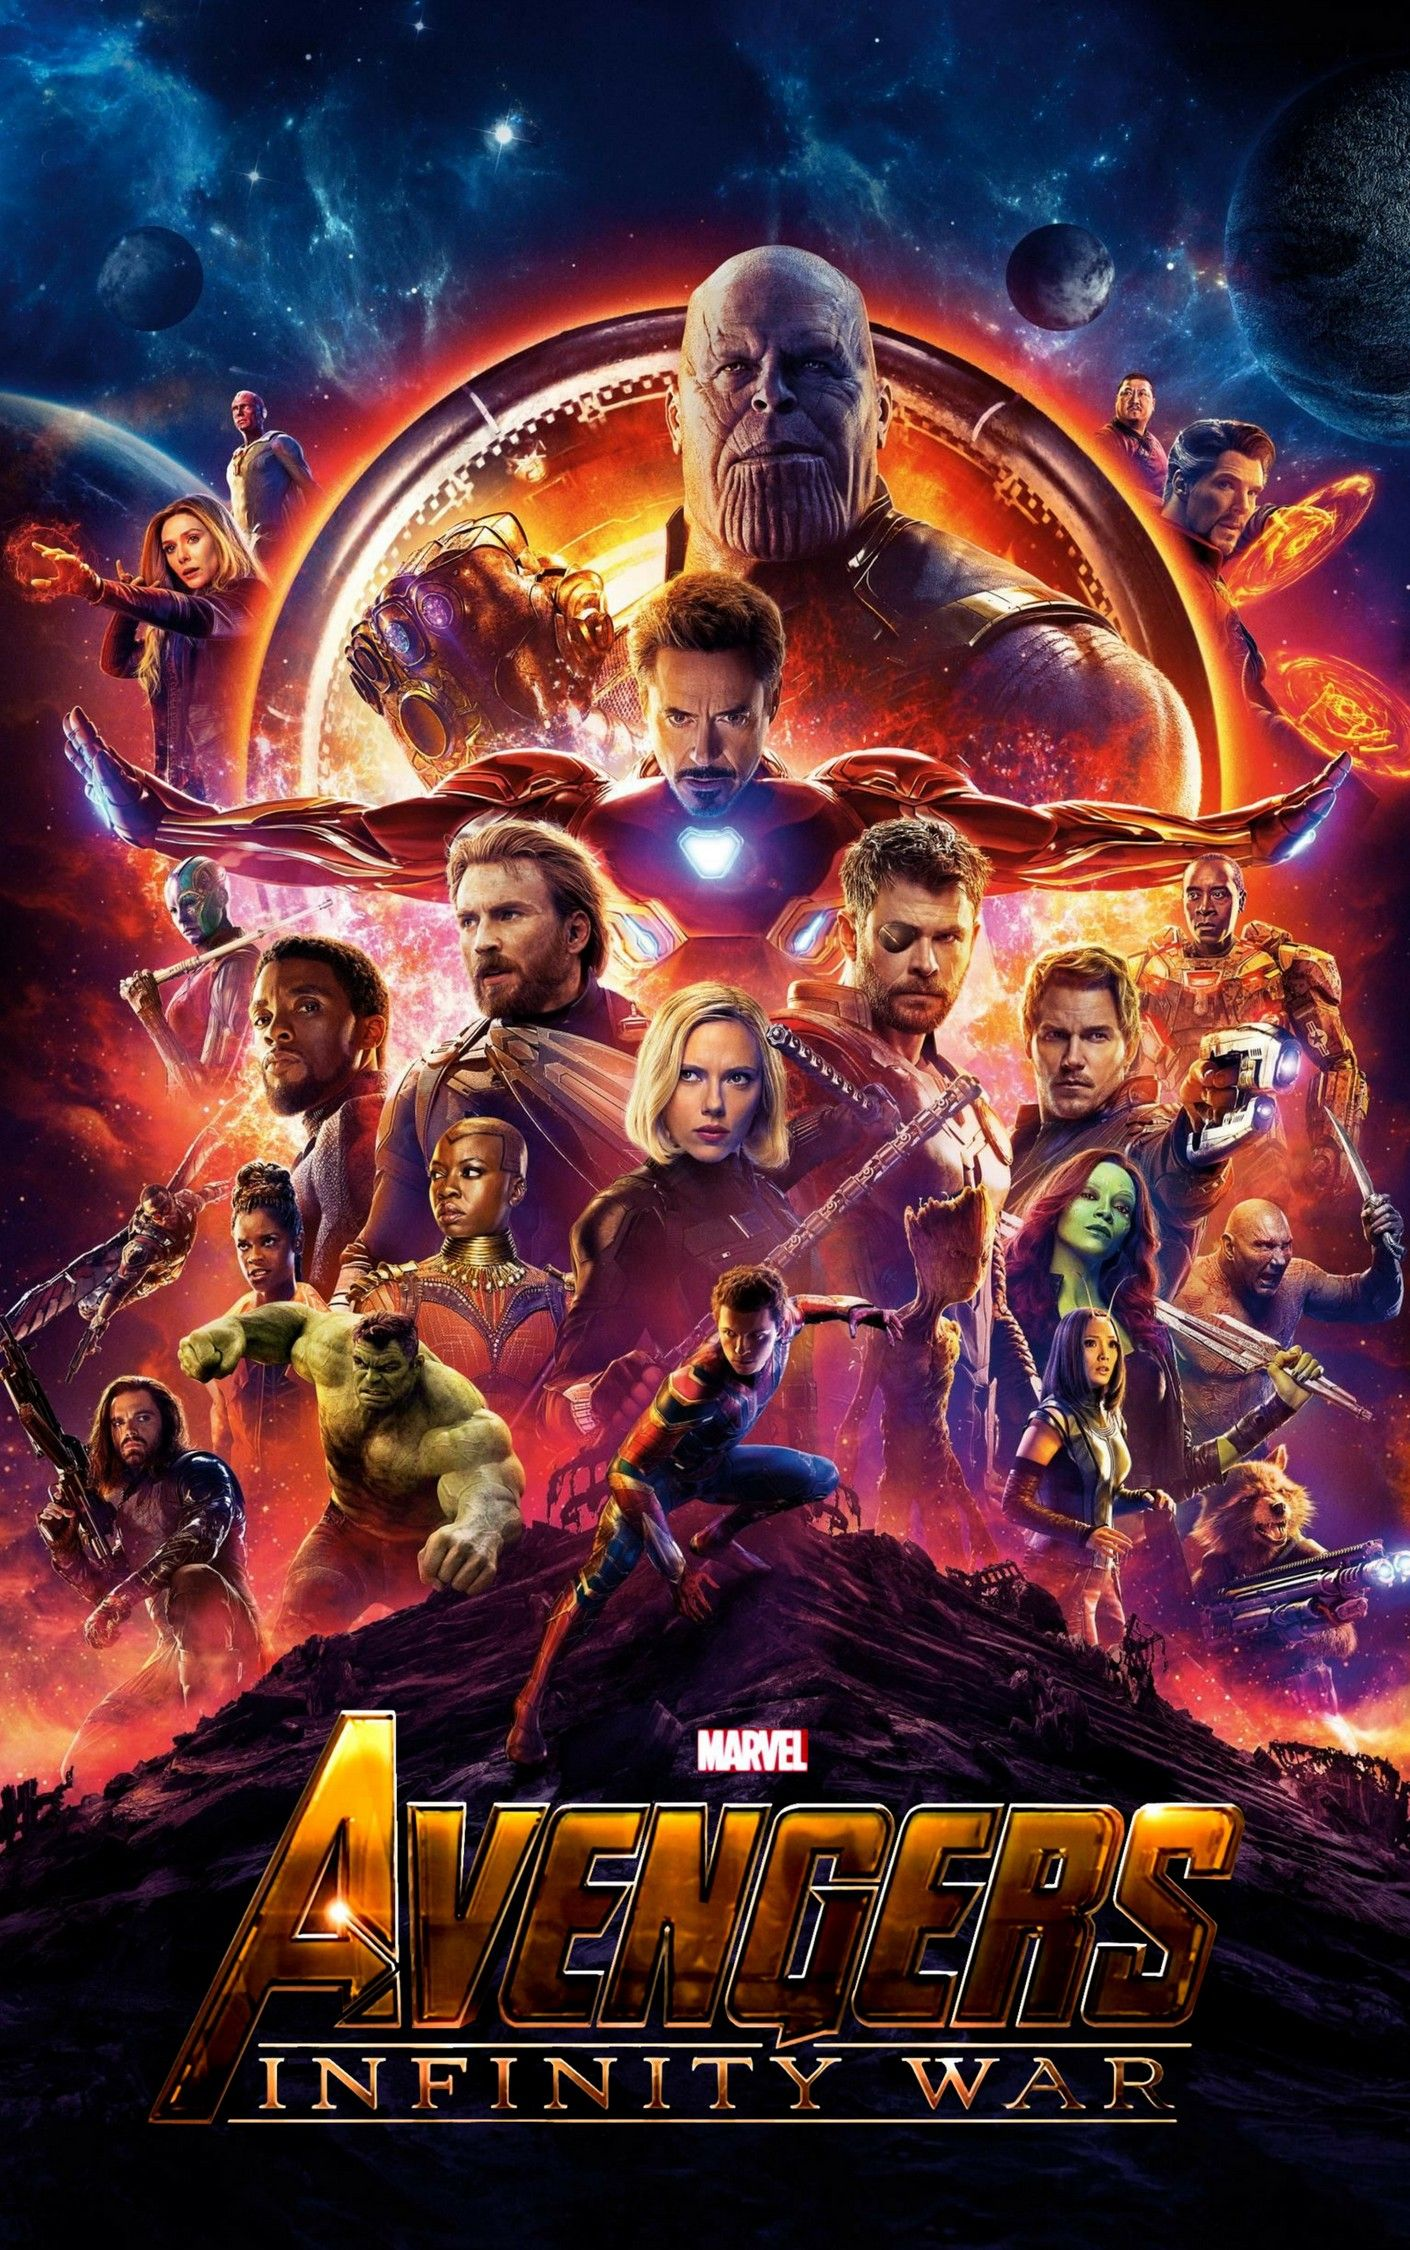 What A Great Movie Well Done Marvel With Images Marvel